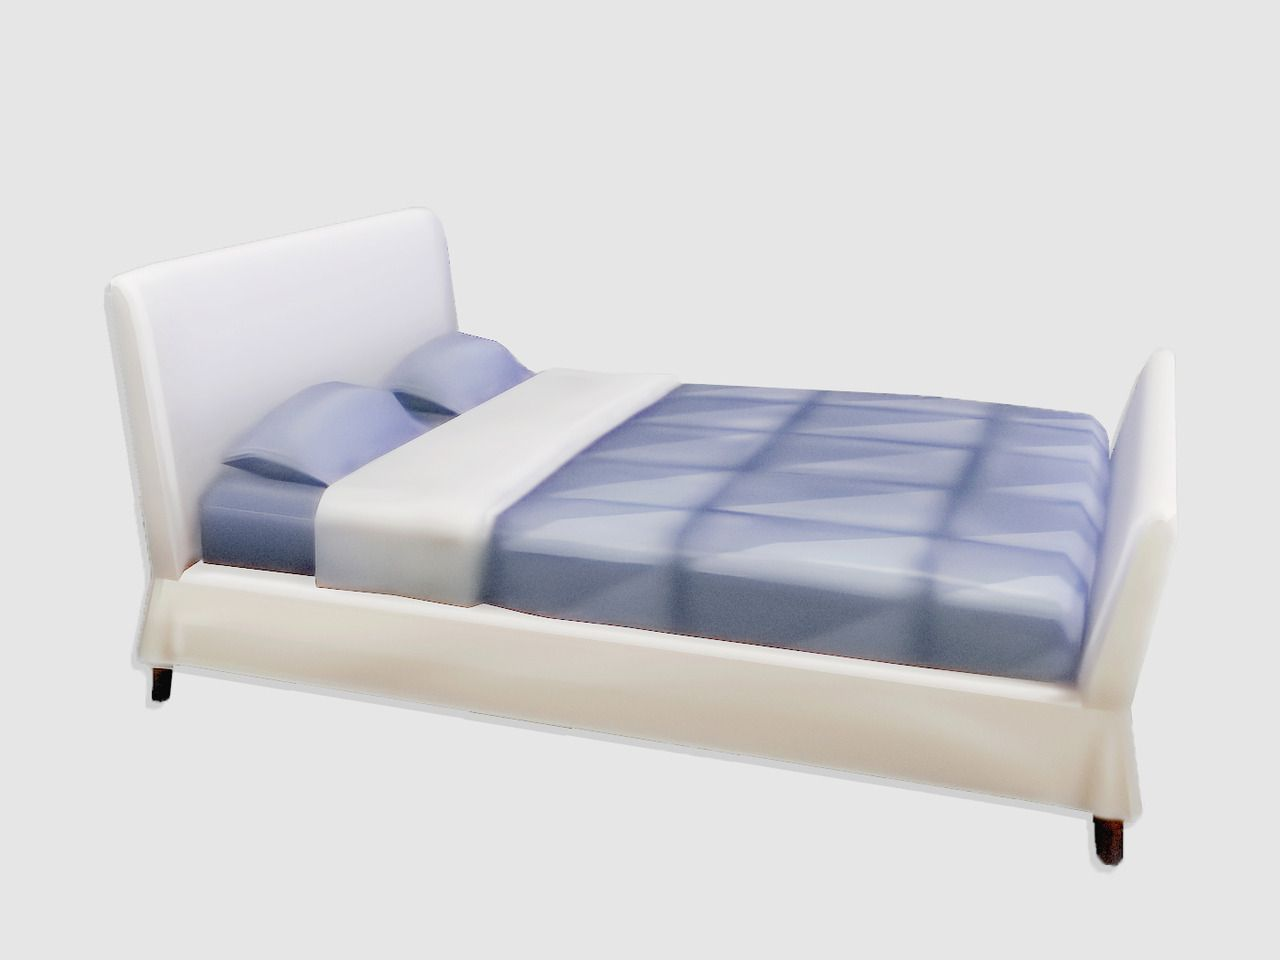 Gloomfish Gloom Bed A Bed Frame Duh Bgc 4 Swatches 2 Versions Single And Double Bed Its A Bed Frame Bed Frame Sims 4 Beds Headboards For Beds